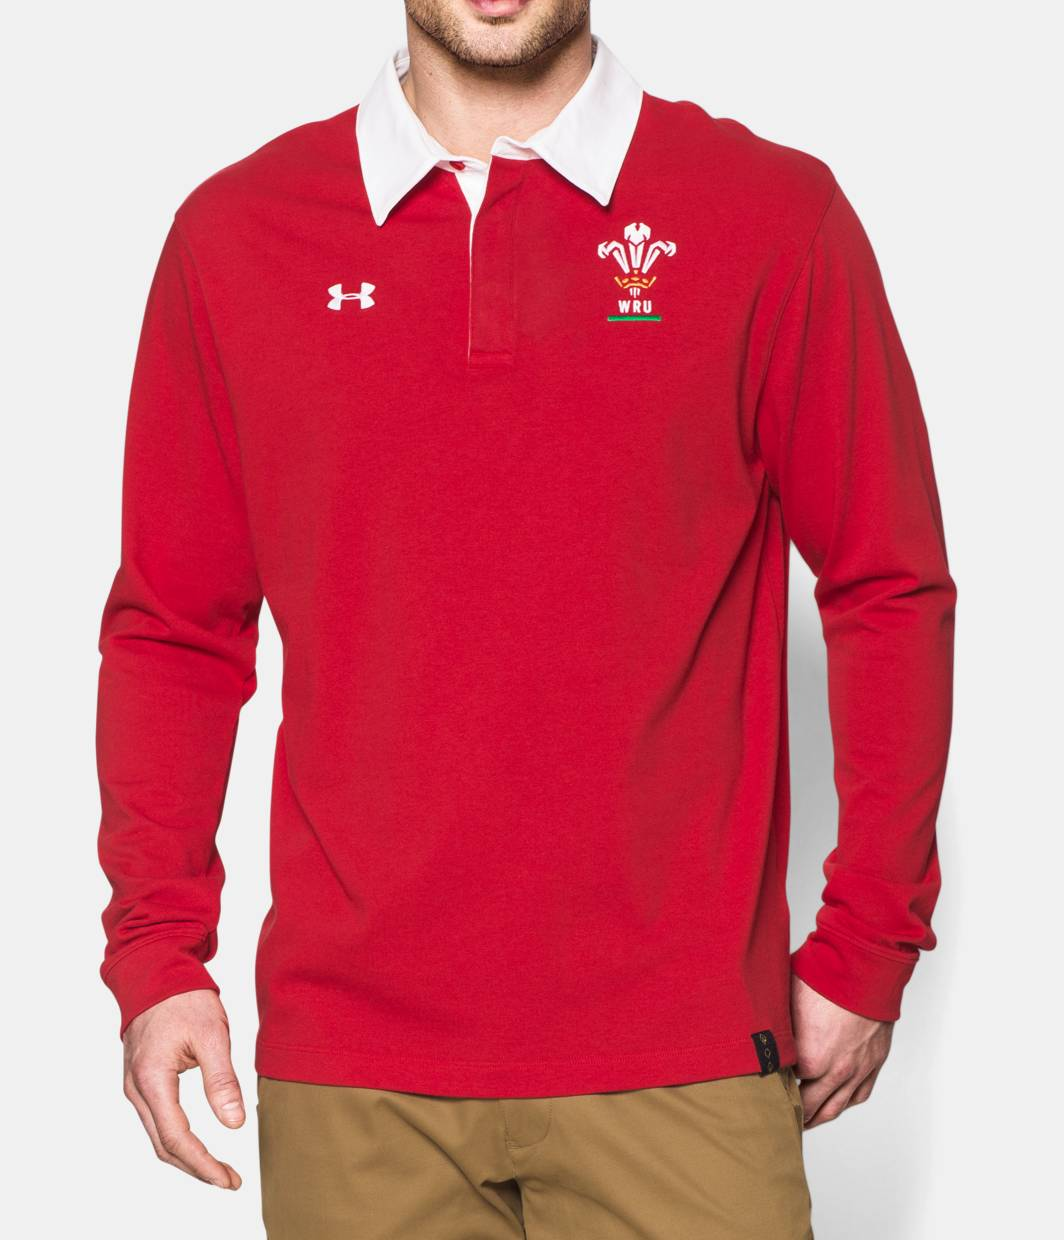 Find long sleeve rugby shirts for men at ShopStyle. Shop the latest collection of long sleeve rugby shirts for men from the most popular stores - all. Polo Ralph Lauren Hi Tech Long Sleeve Rugby Polo Shirt $ Get a Sale Alert at East Dane Stussy Jonah Stripe.